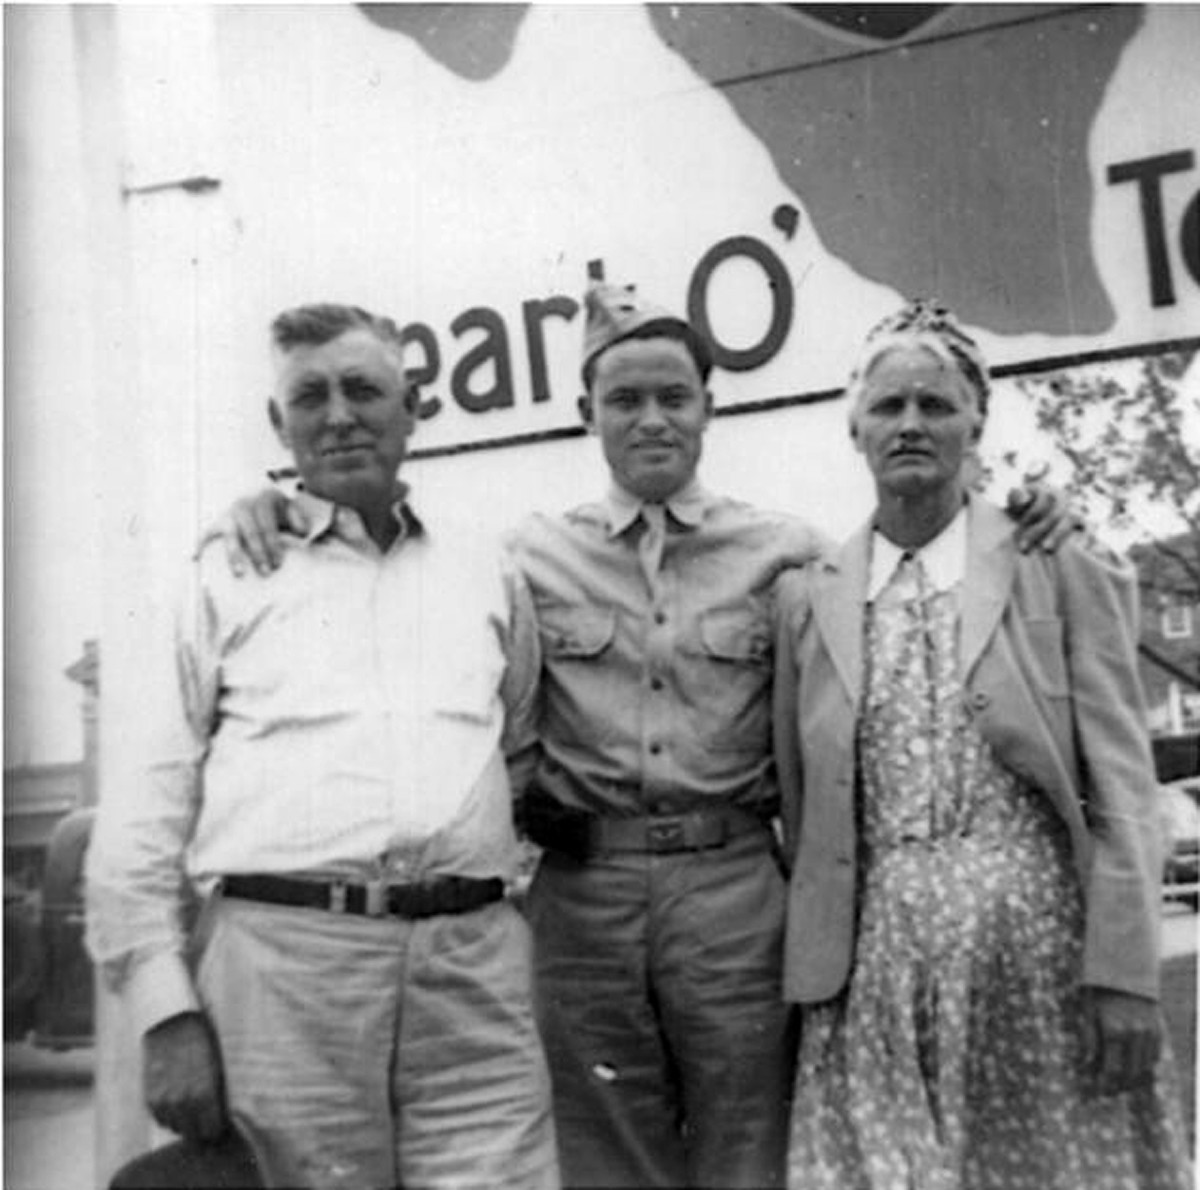 J.R. Ashberry with parents (Brady, Texas)